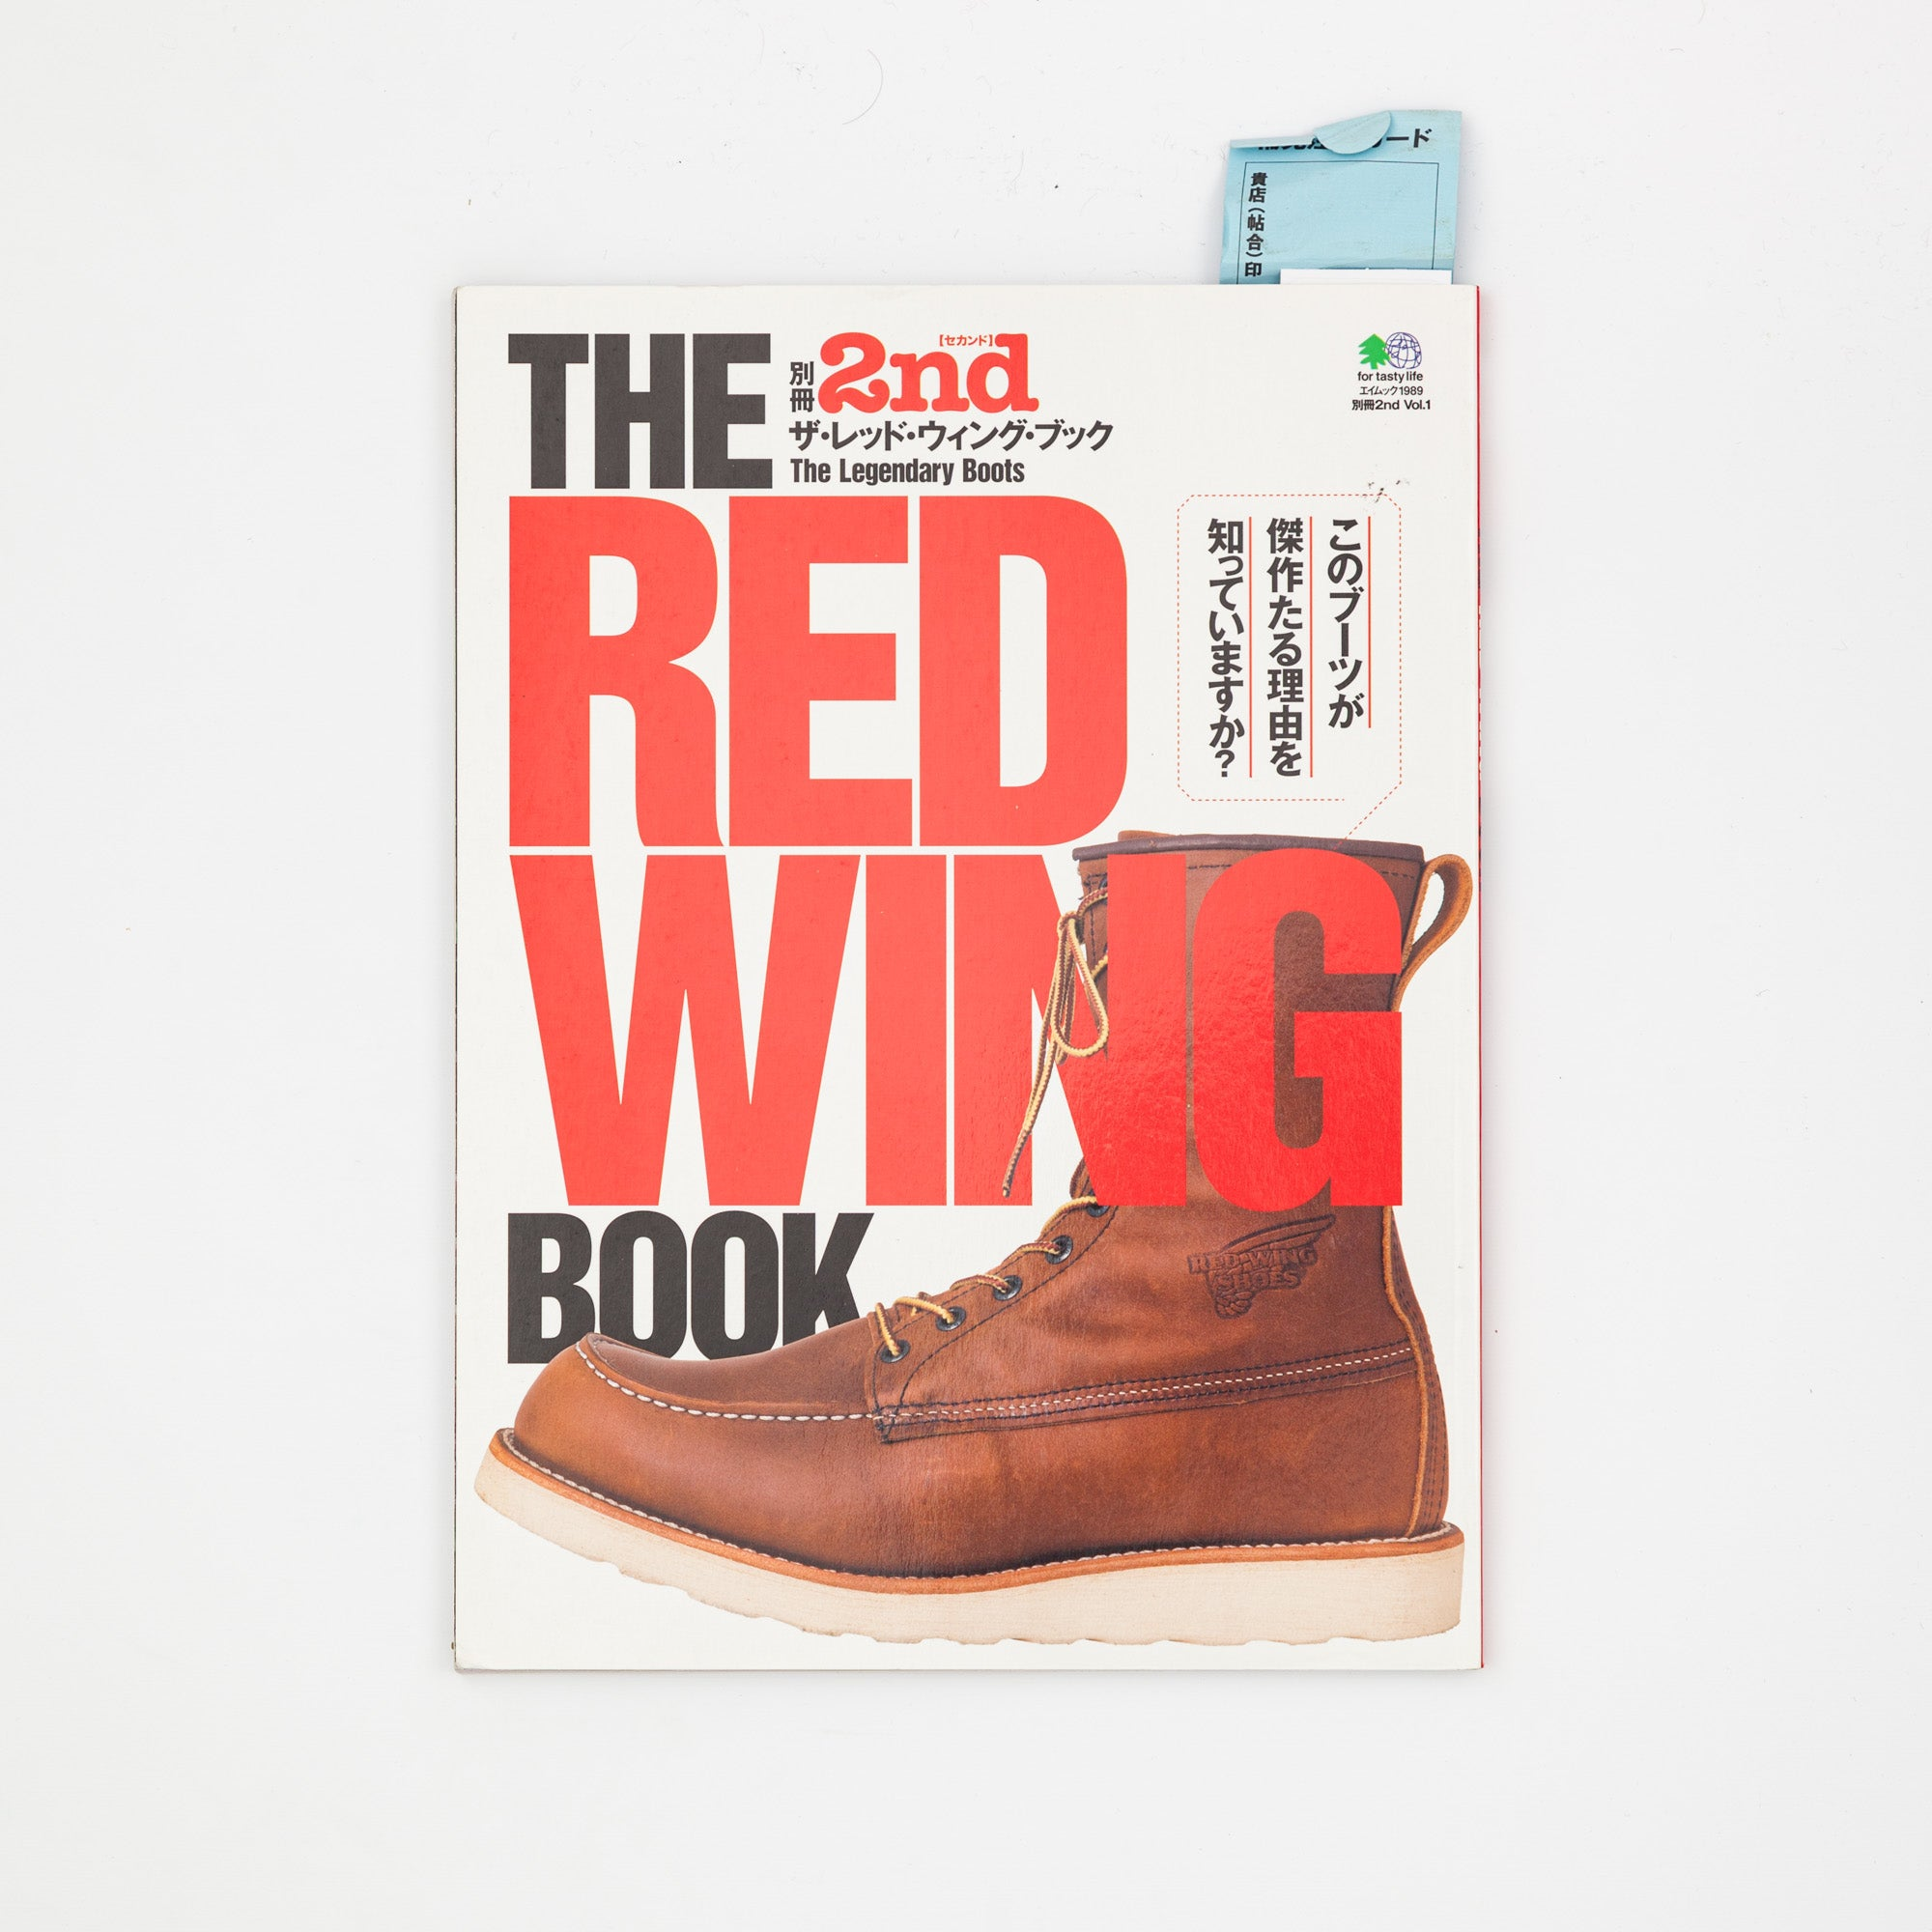 The Red Wing Book